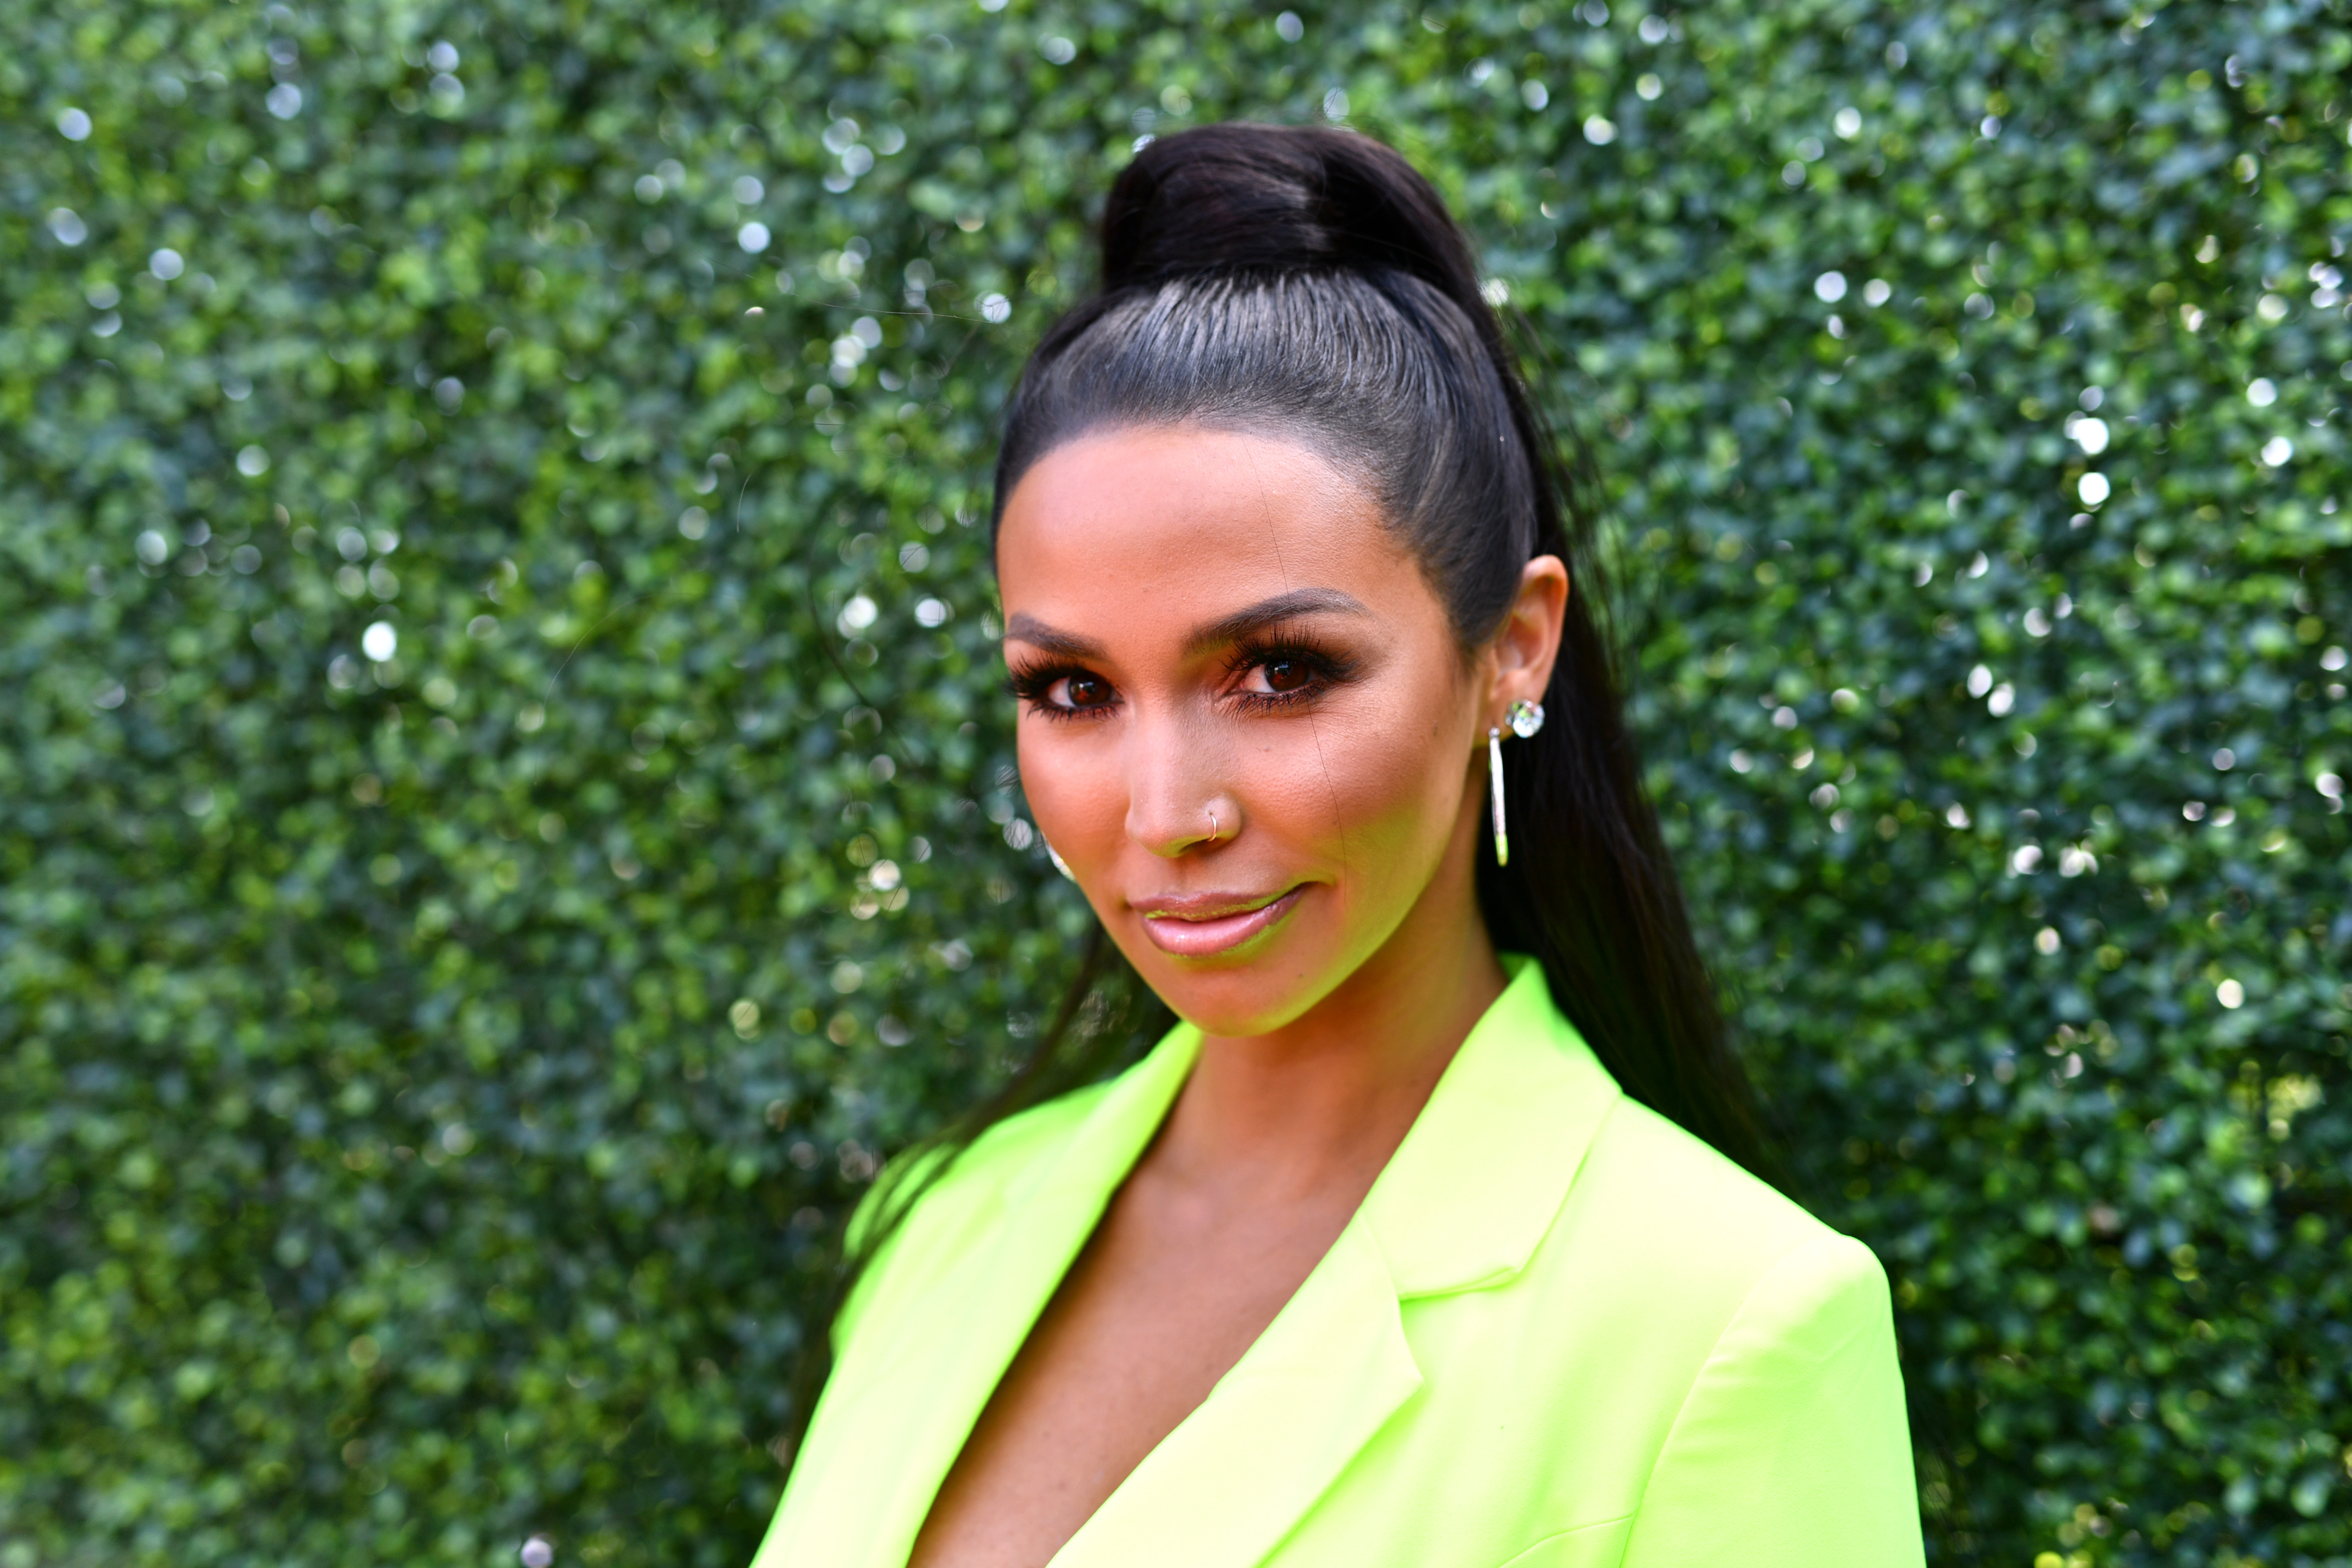 Scheana Shay Says Vanderpump Rules Portrays Her Unfairly Almost Every Season National Globalnews Ca